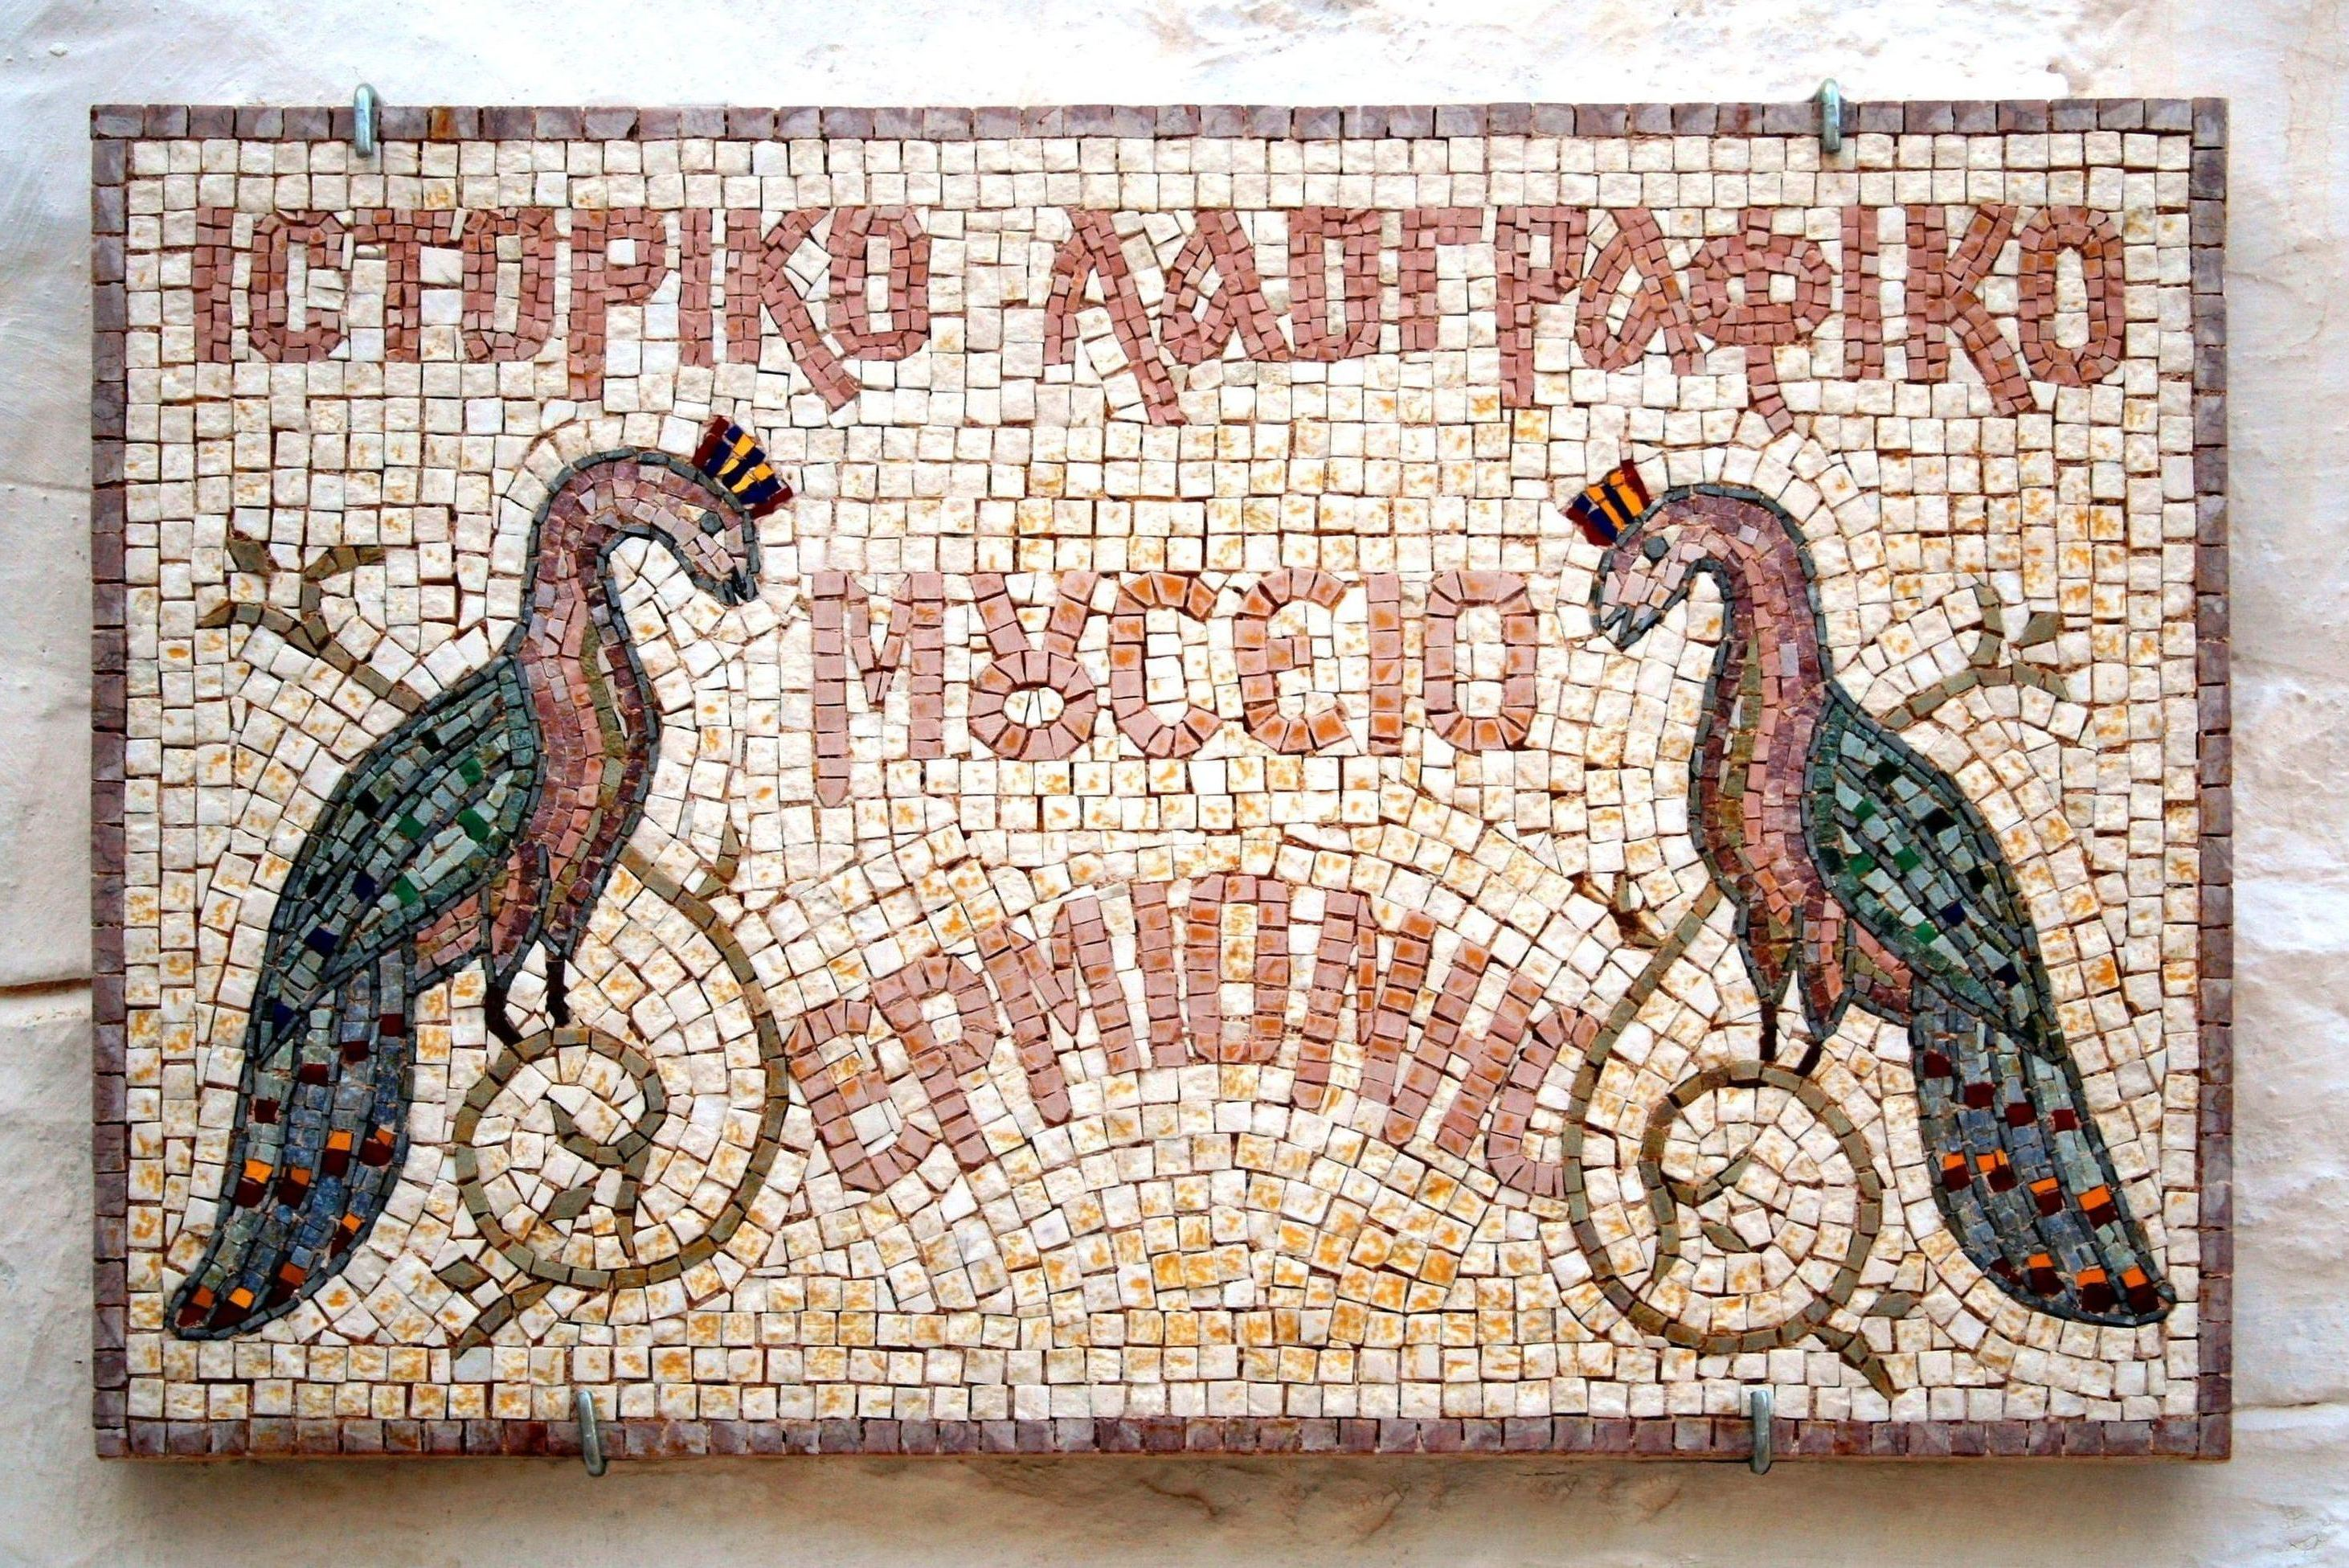 The Ermioni museum of history and folklore mosaic